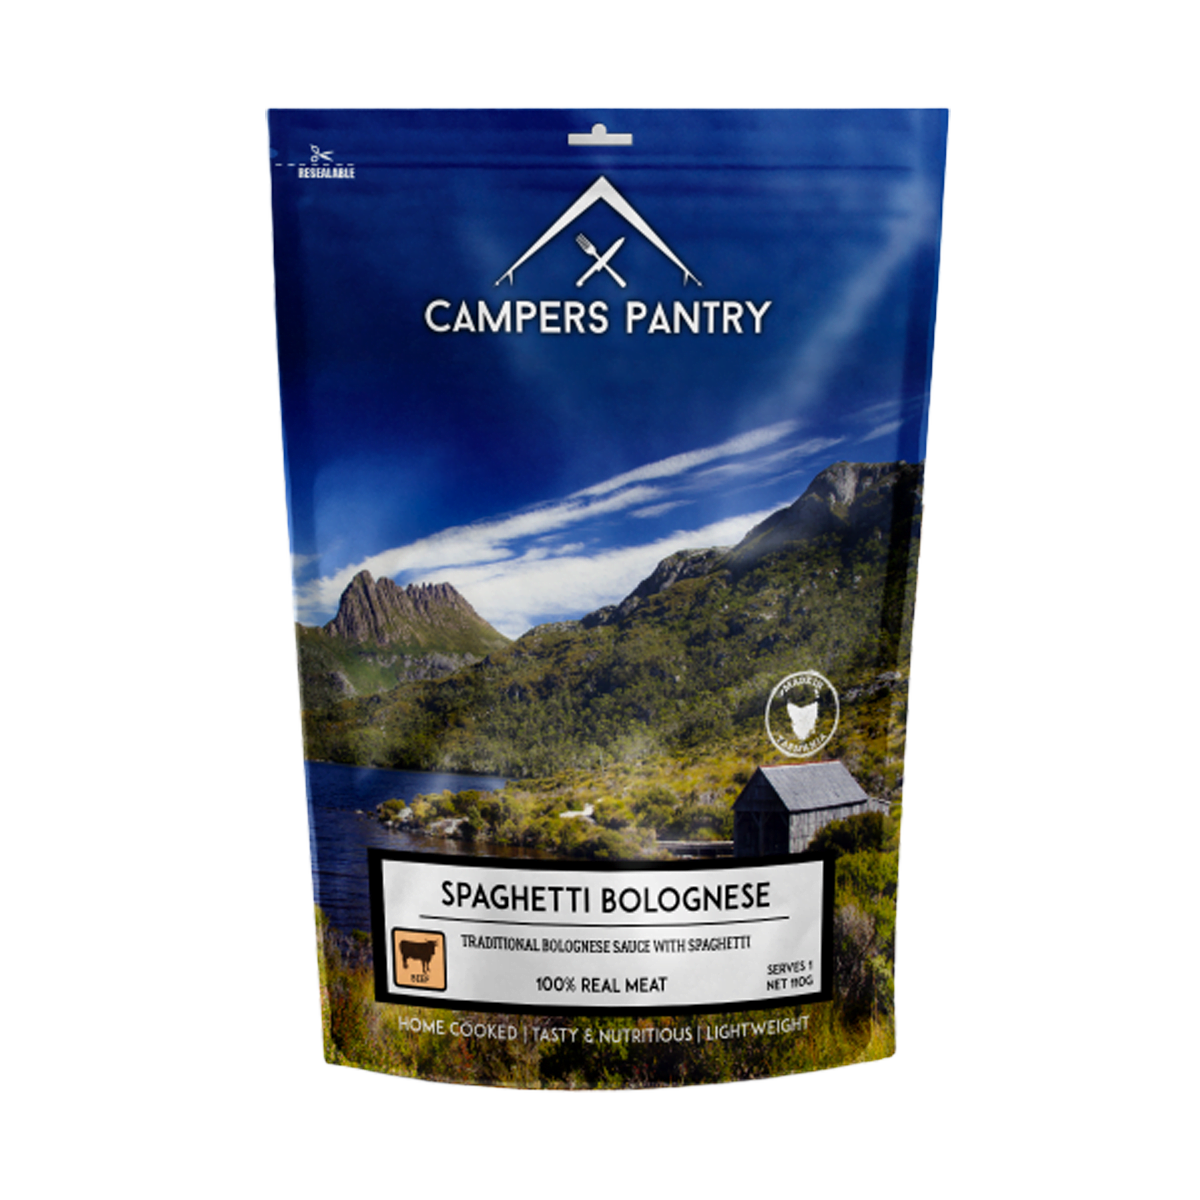 campers pantry spaghetti bolognese 1